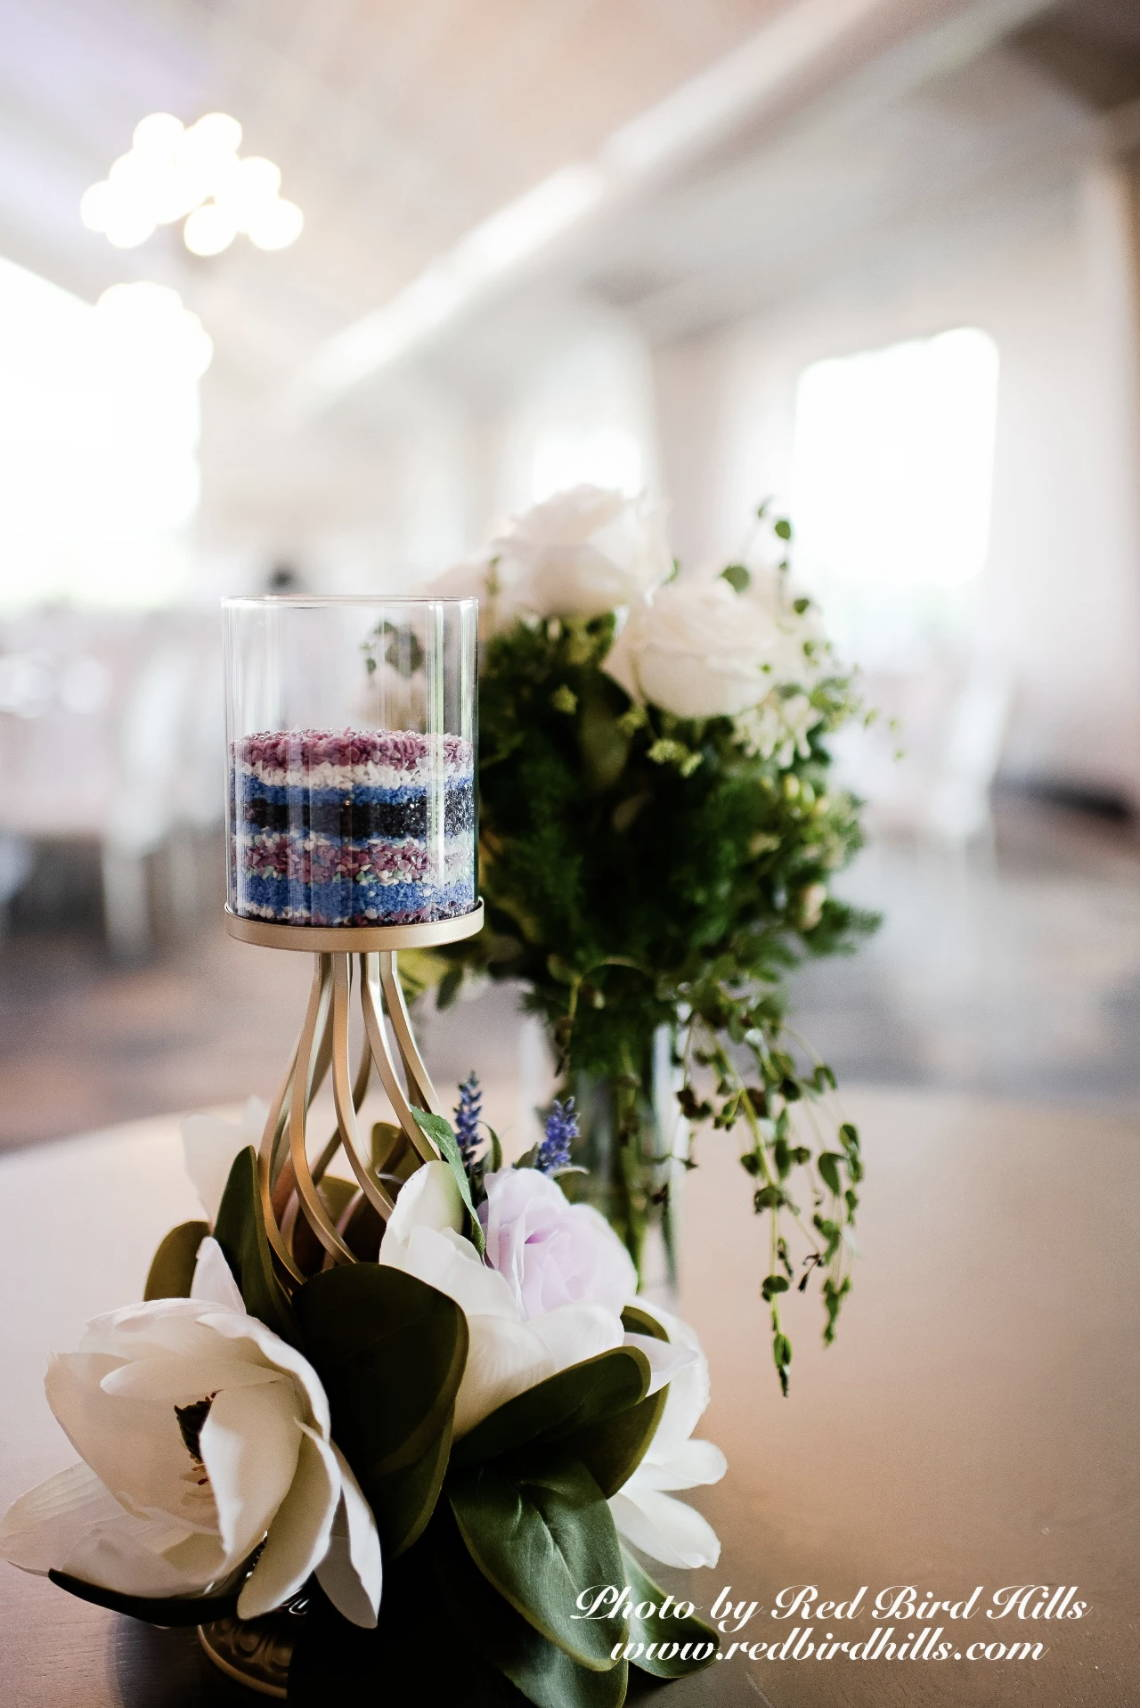 Frit Mixed on display at wedding. Photograph taken by Red Bird Hills.